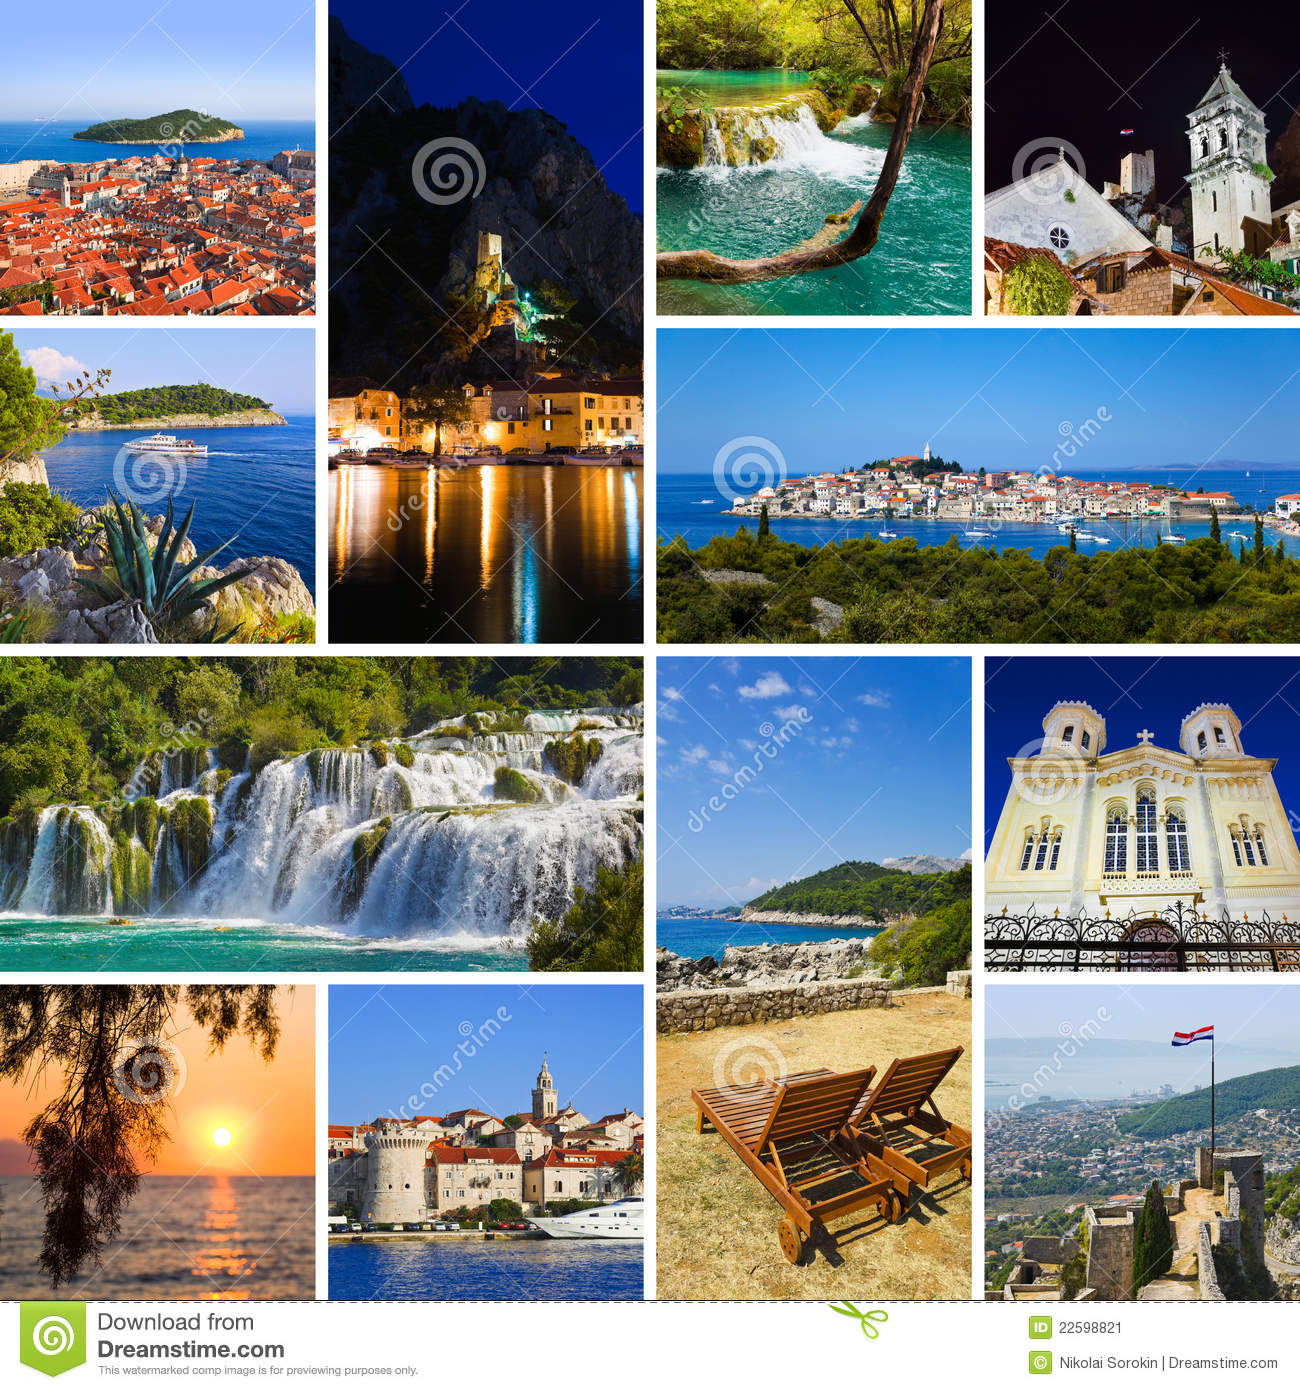 Collage Of Croatia Travel Images Stock Image Image 22598821